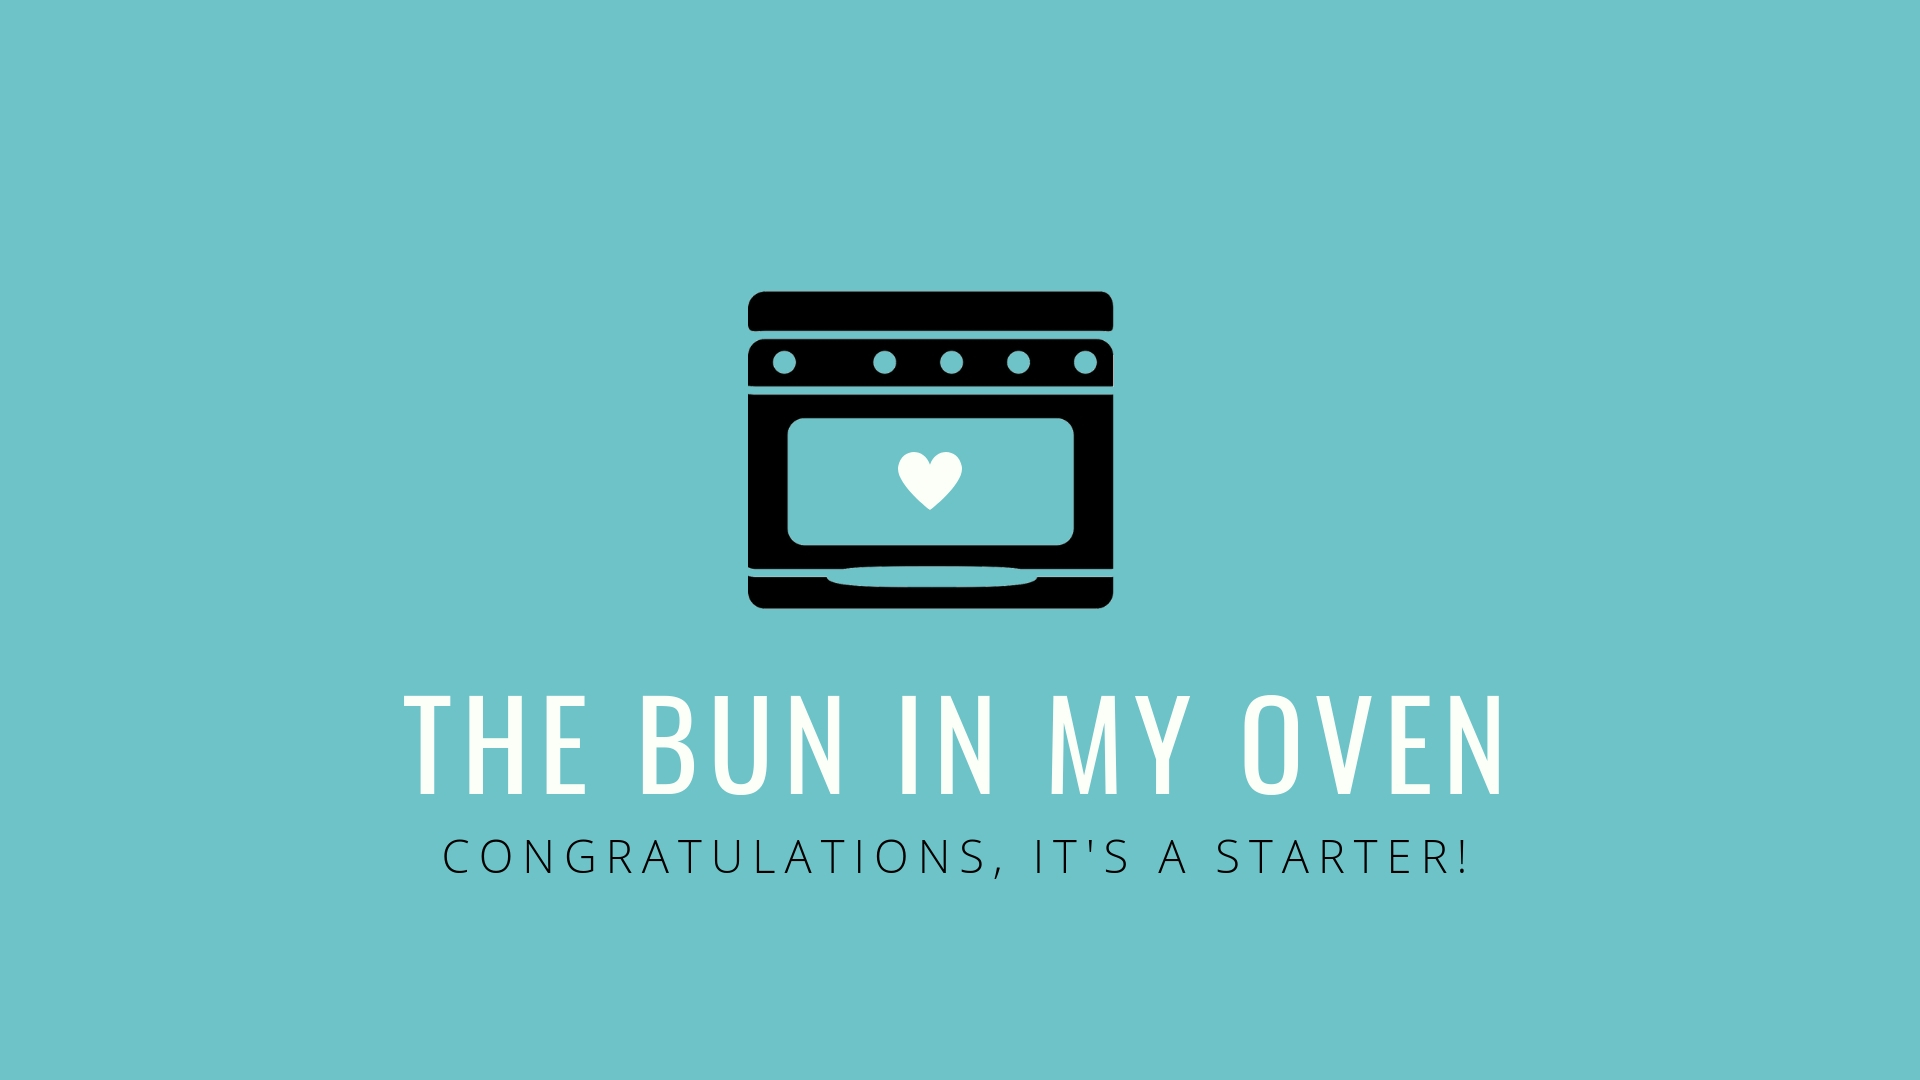 The Bun in my oven: Baking, bread, babies and single motherhood by choice